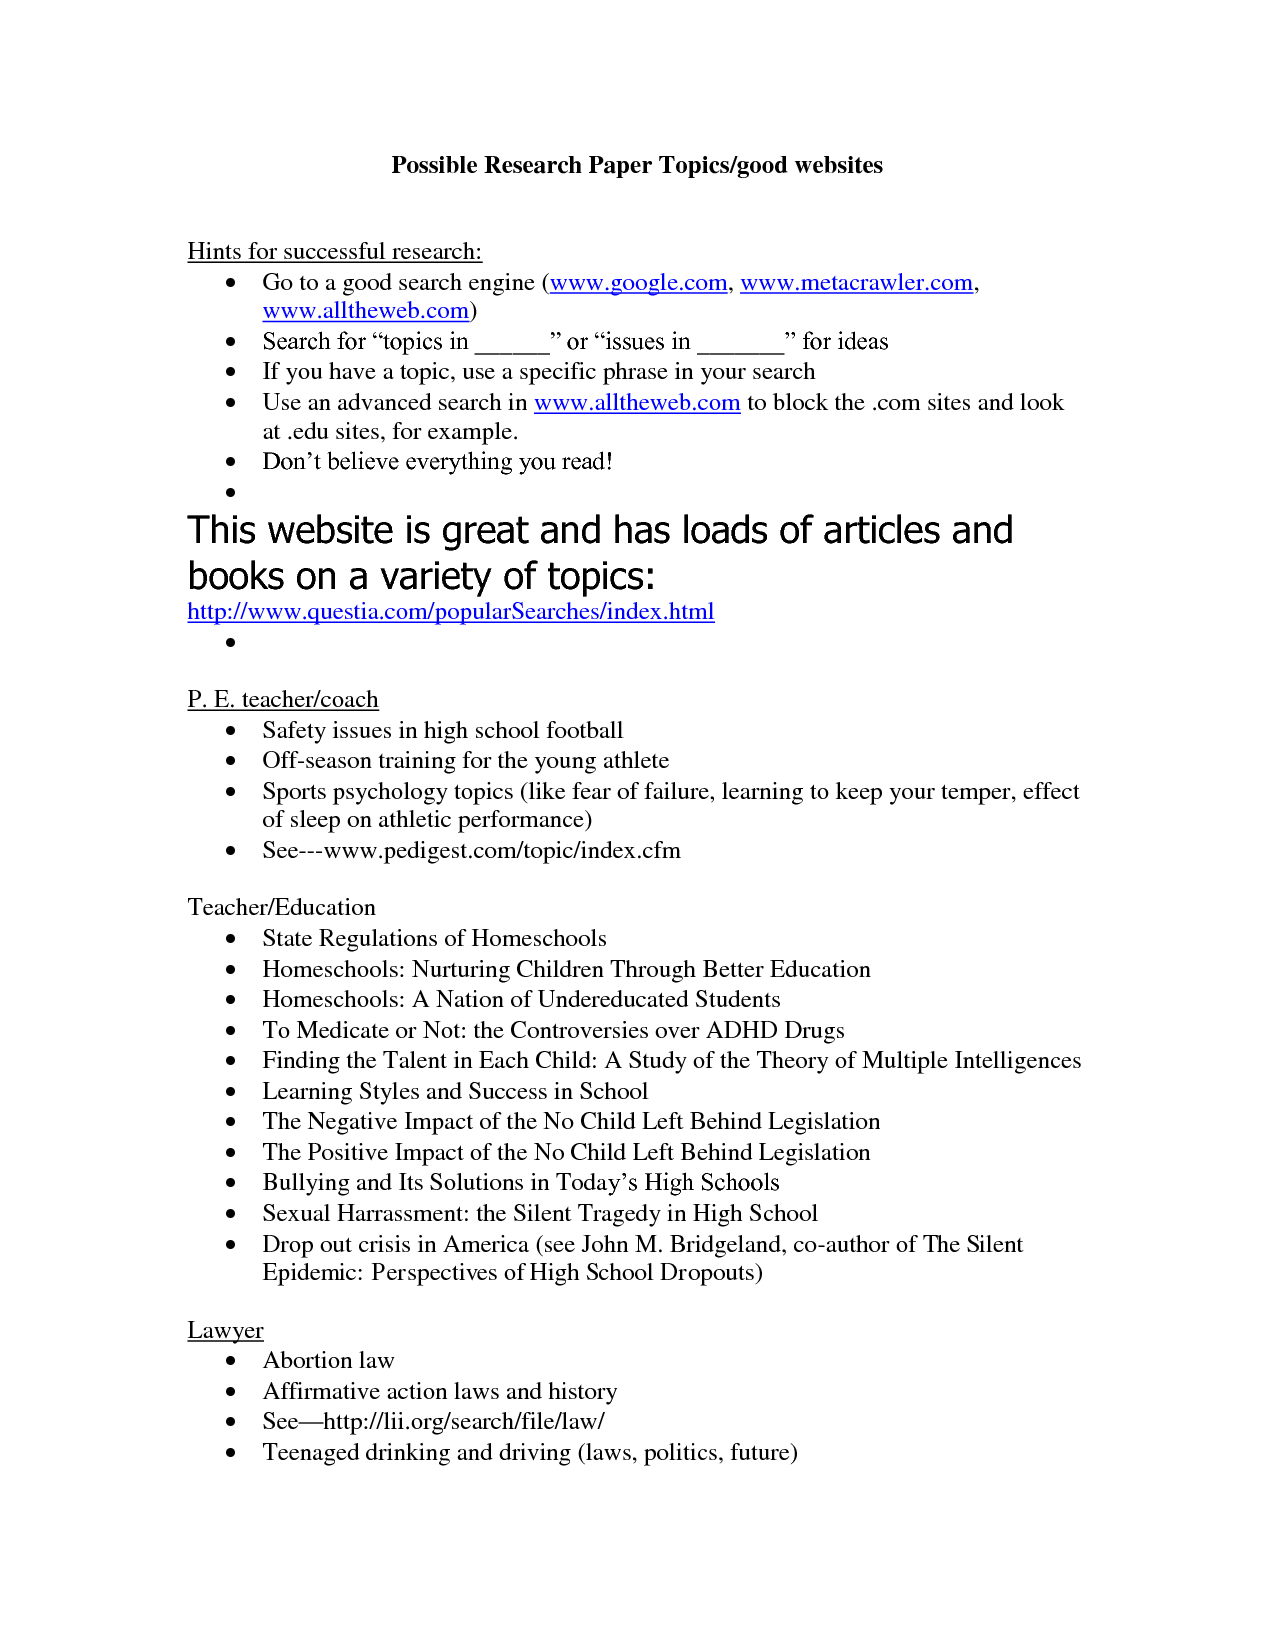 002 Interesting Topics For Research Paper College Best Solutions Of Fabulous Papers High School Rare Students In The Philippines History Technology Full